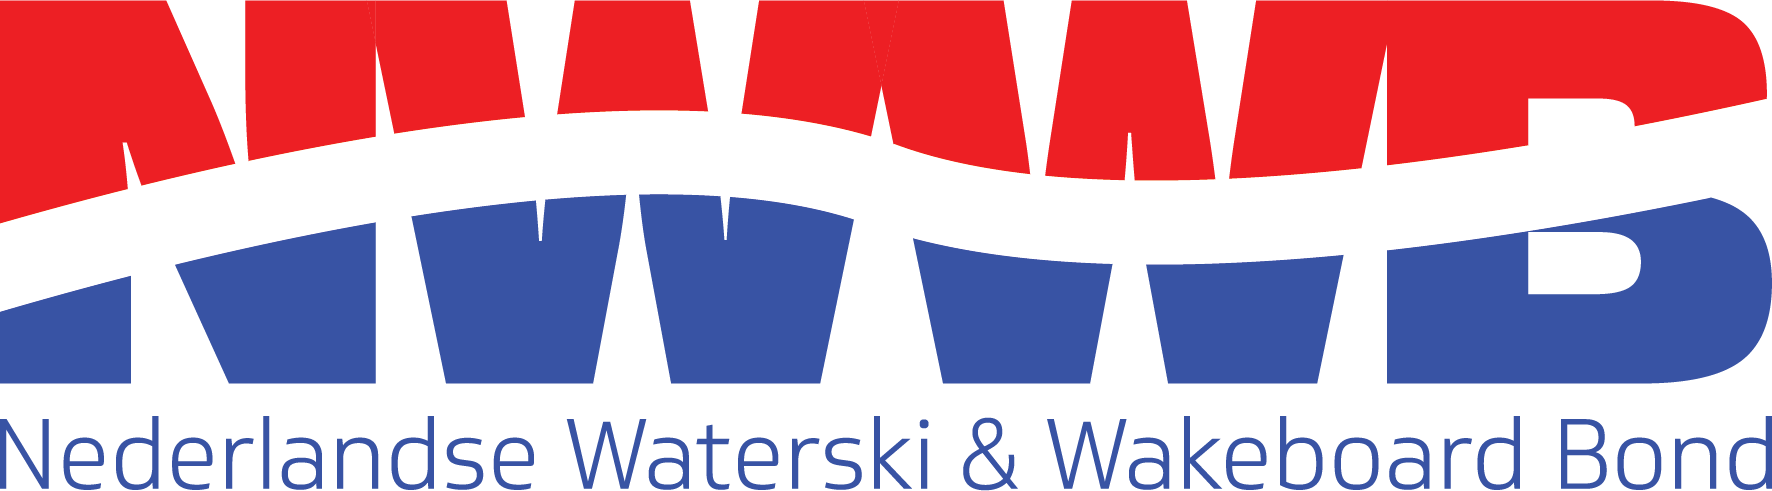 https://www.onboardwakeboarding.nl/wp-content/uploads/logo-nwwb_2017_20190108171450412.png